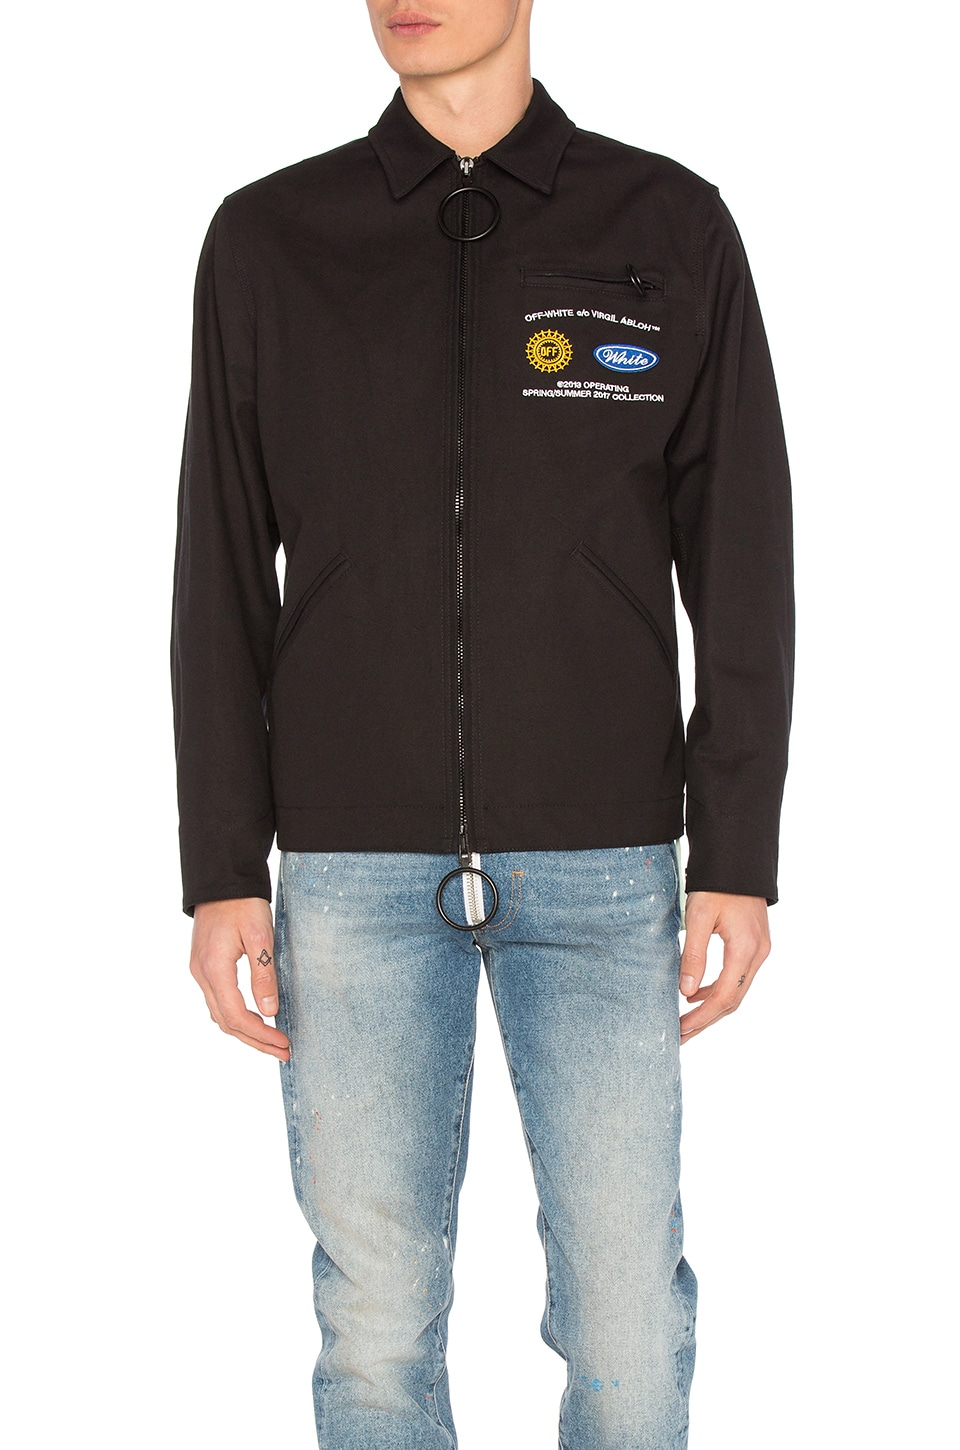 Work Jacket by OFF-WHITE